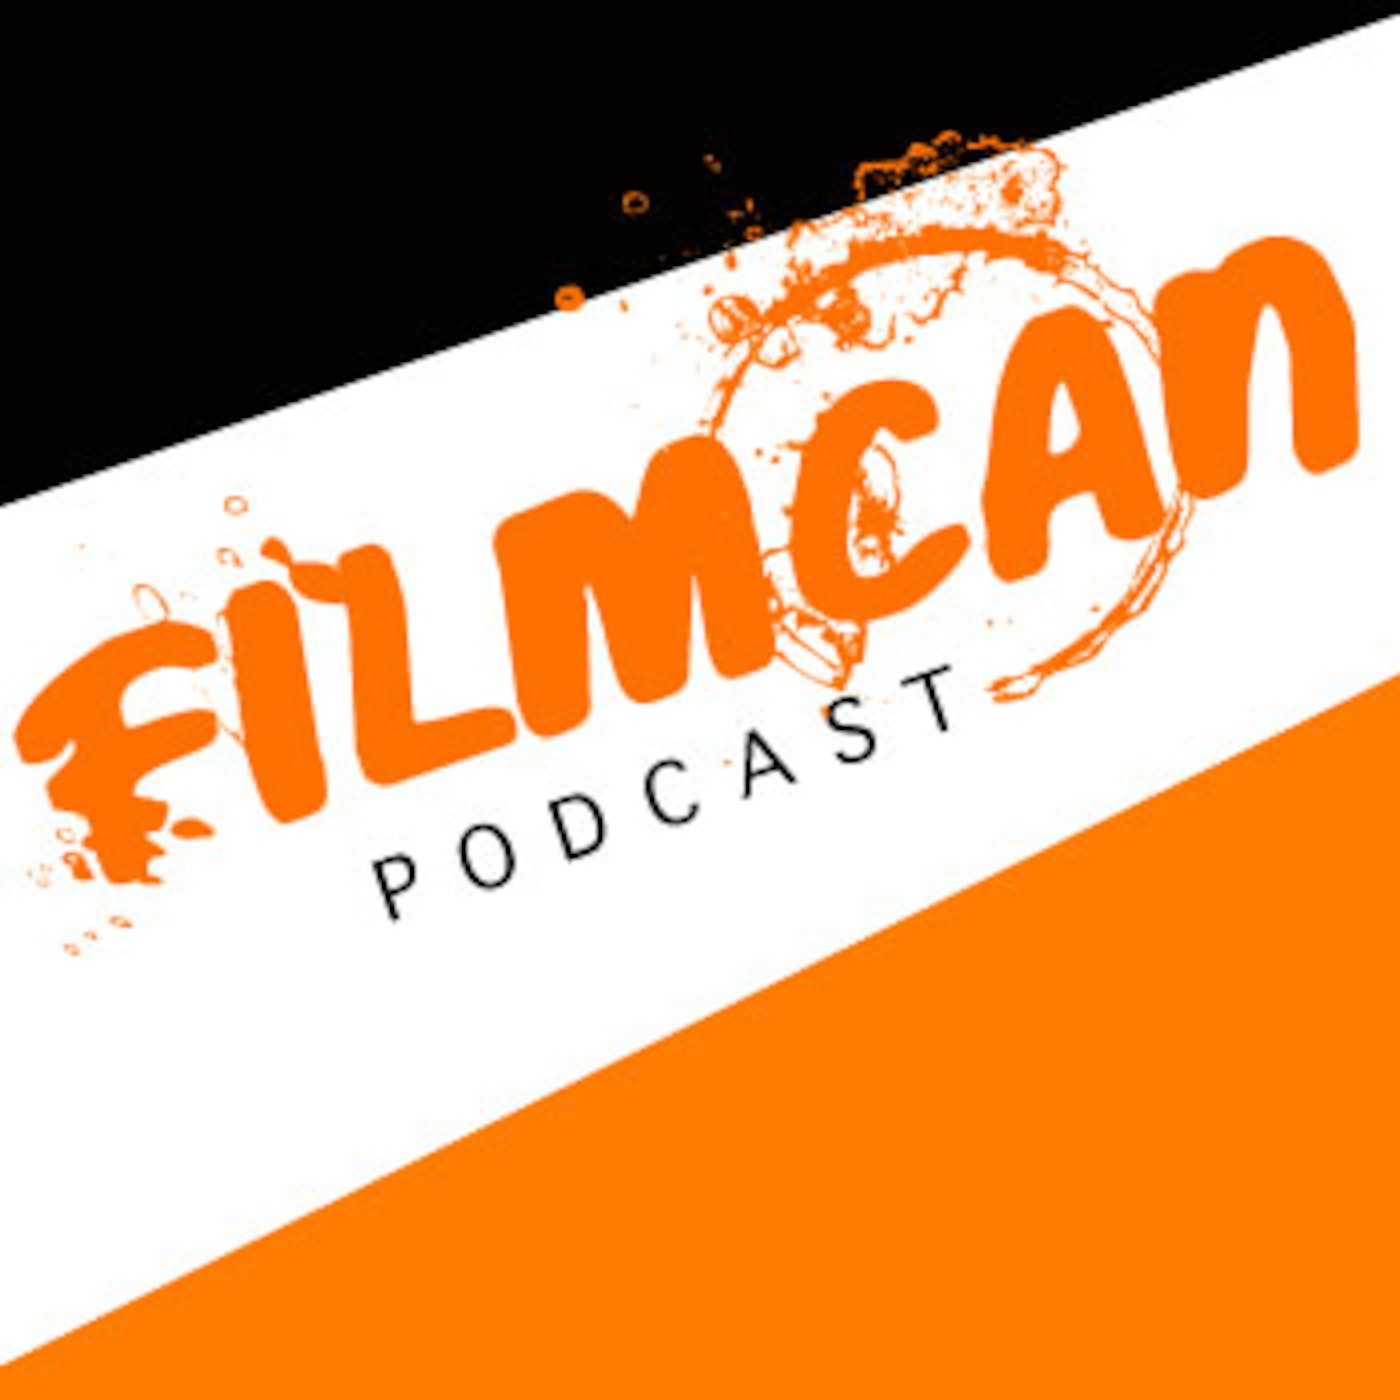 FilmCan Podcast